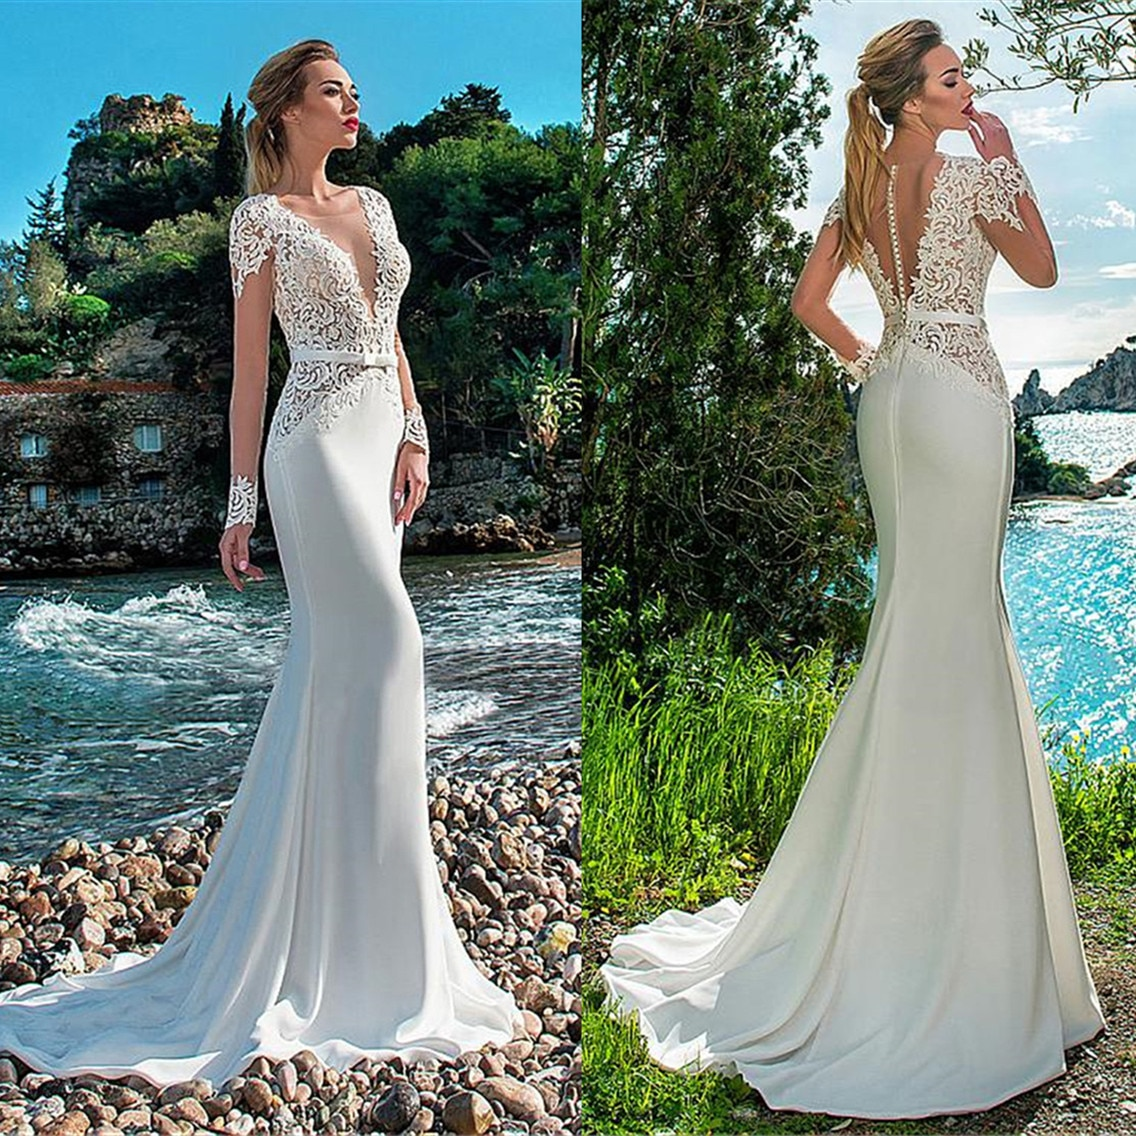 Sexy Beach Mermaid Wedding Dress Long Sleeves Lace Appliqued Illusion Back Boho Gown Train Bride